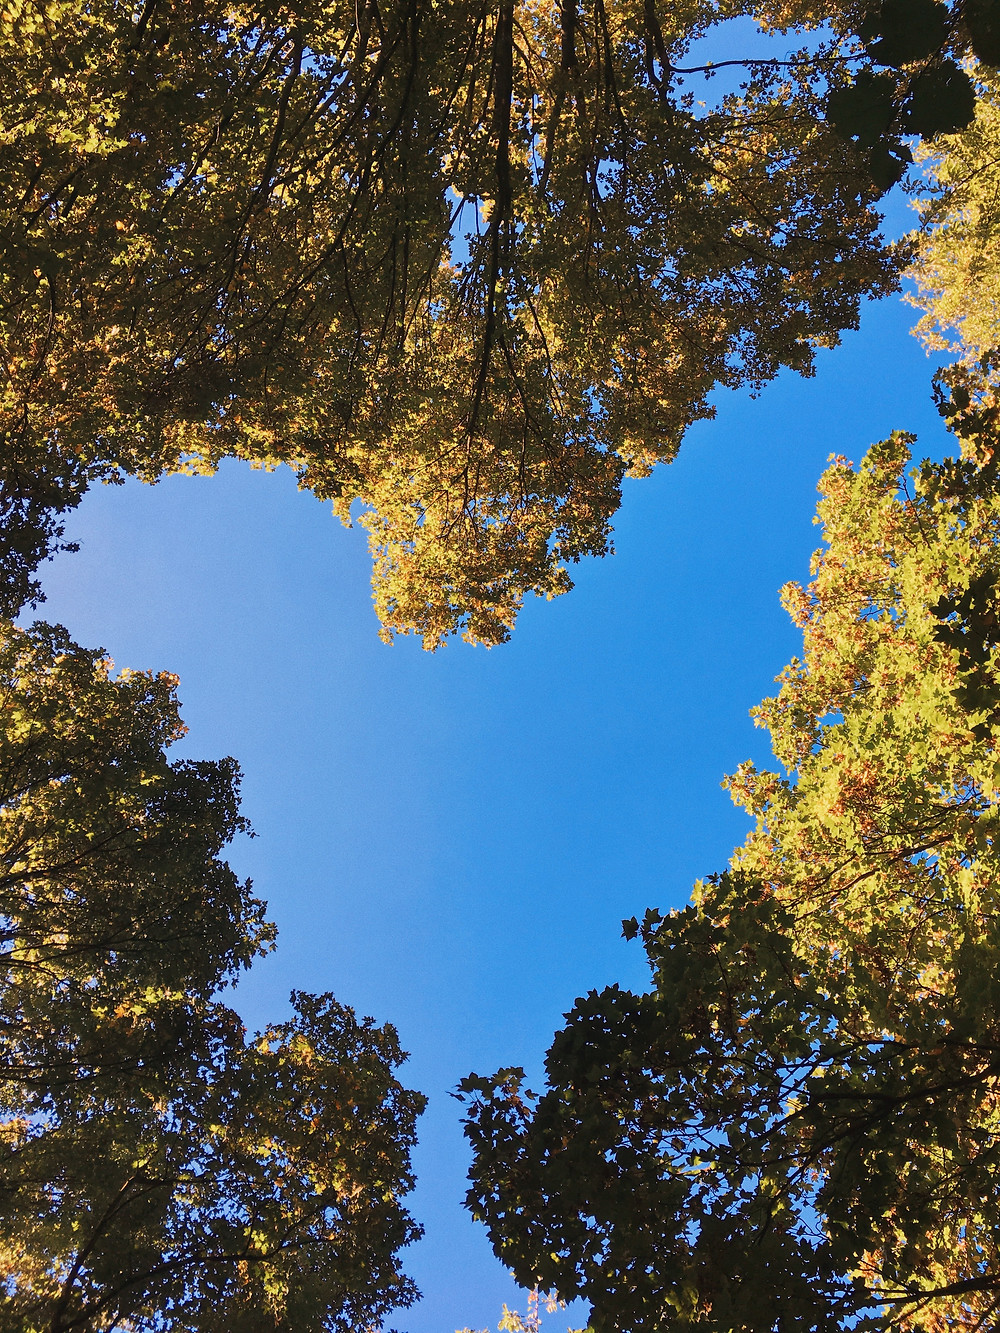 An upward look at the opening between trees creating a heart image